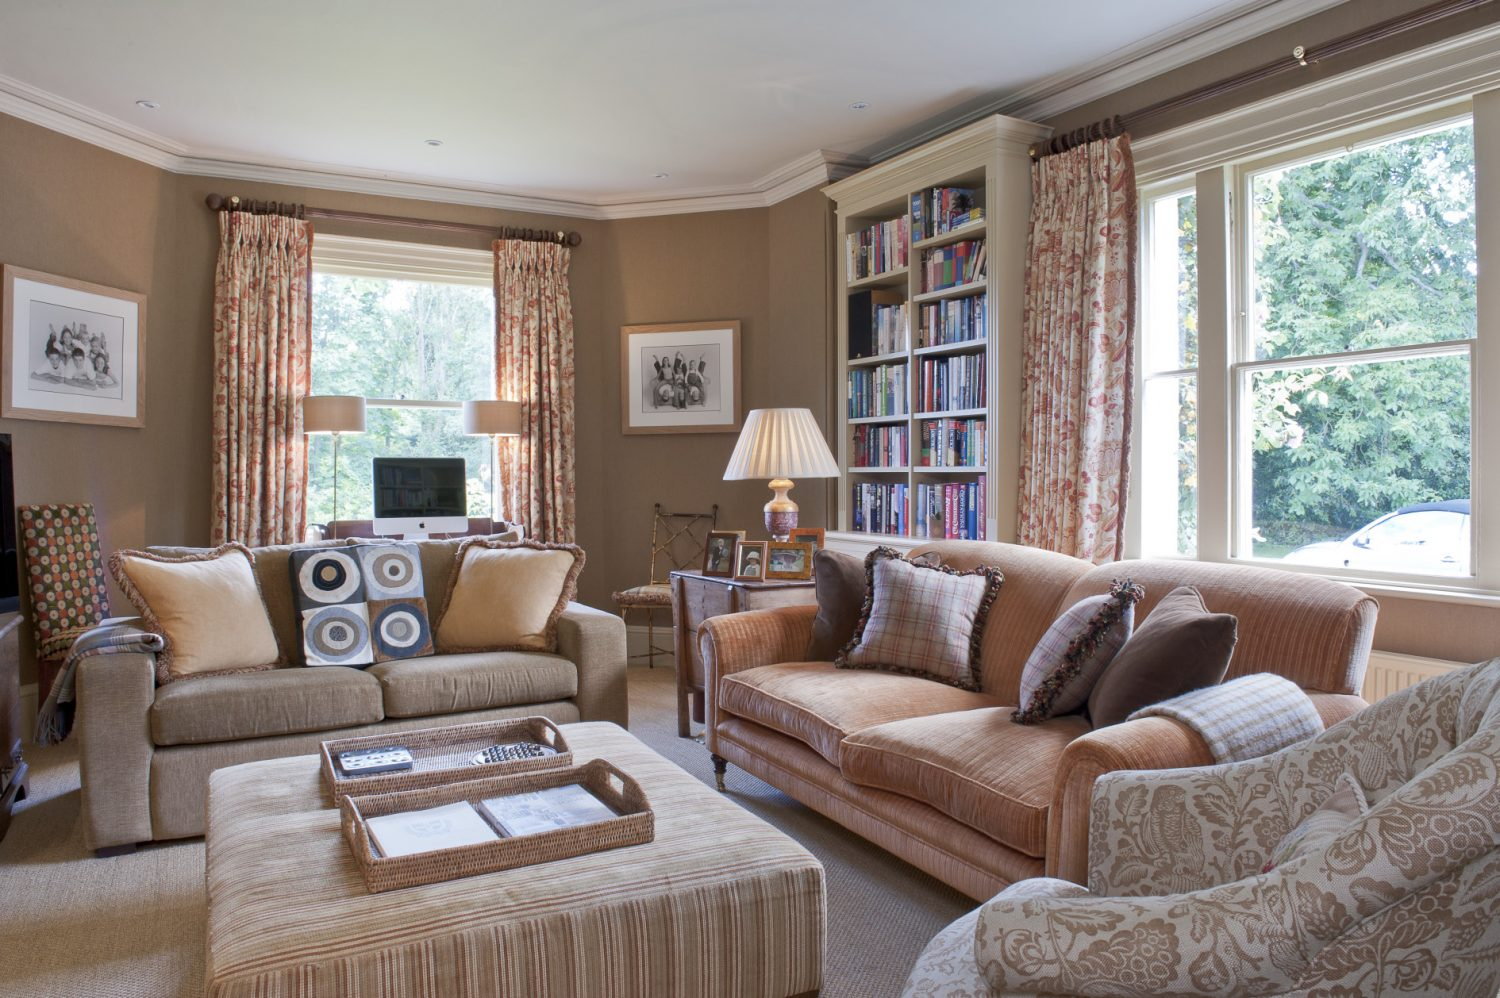 Belinda had the larger sofa in the snug re-upholstered in Lelièvre mogadore velvet so that it is fresh yet still looks like a loved family piece. The walls are hung with Casamance wallpaper giving the room the warmth and appearance of being fabric-lined.